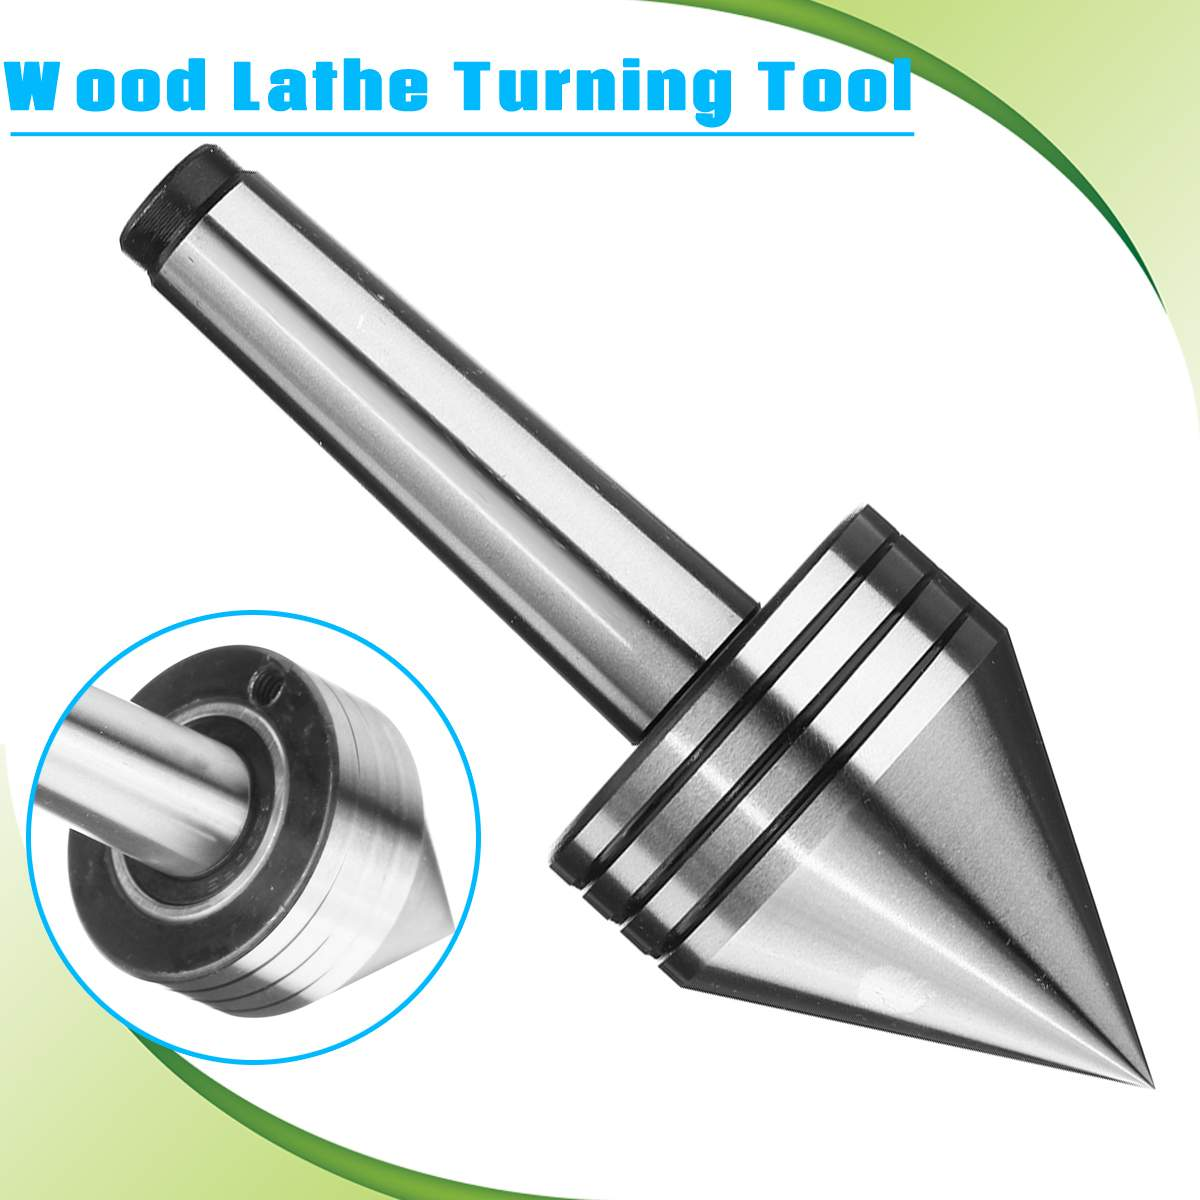 For CNC Cutter Lathe Tool MT2 Live Center Morse Taper Bearing Tailstock Center 0.001mm 60 Degree For Metal Wood Lathe Turning